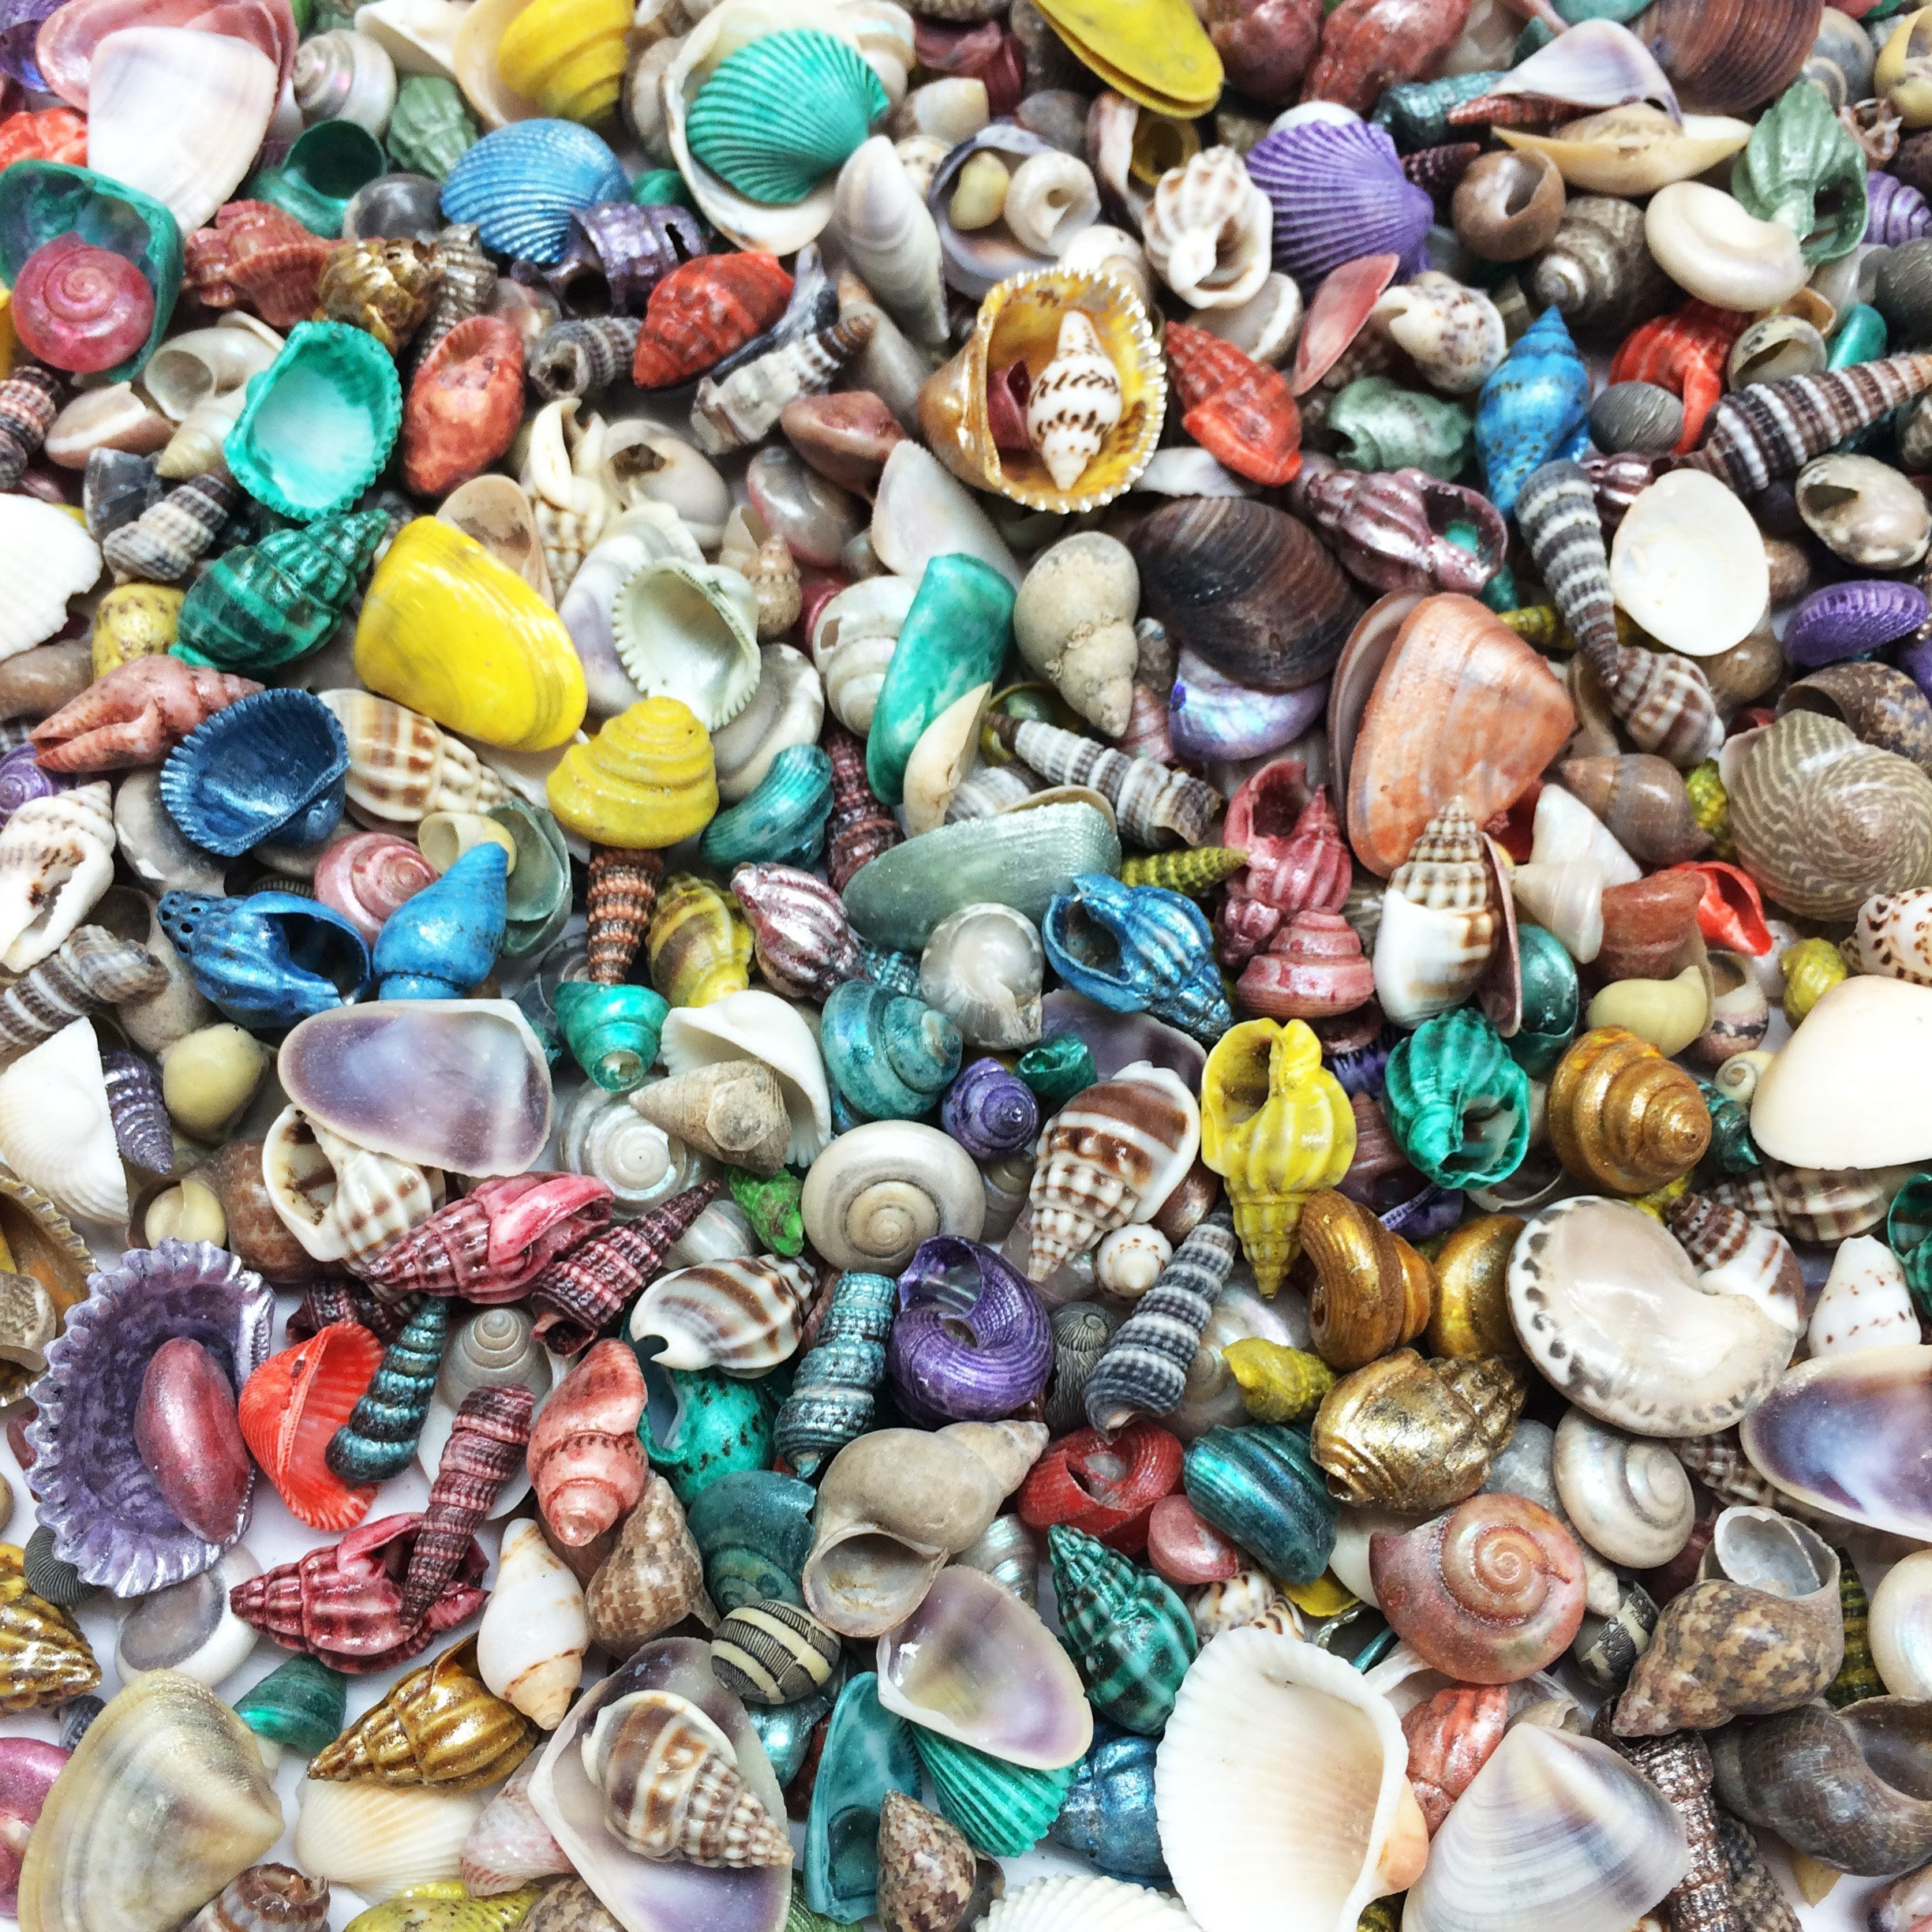 PEPPERLONELY Extra Small Dyed/Natural Mix Seashells, Very Small & Clean, 8 OZ Apprx.1600+ PC Shells, 1/4 Inch ~ 1/2 Inch